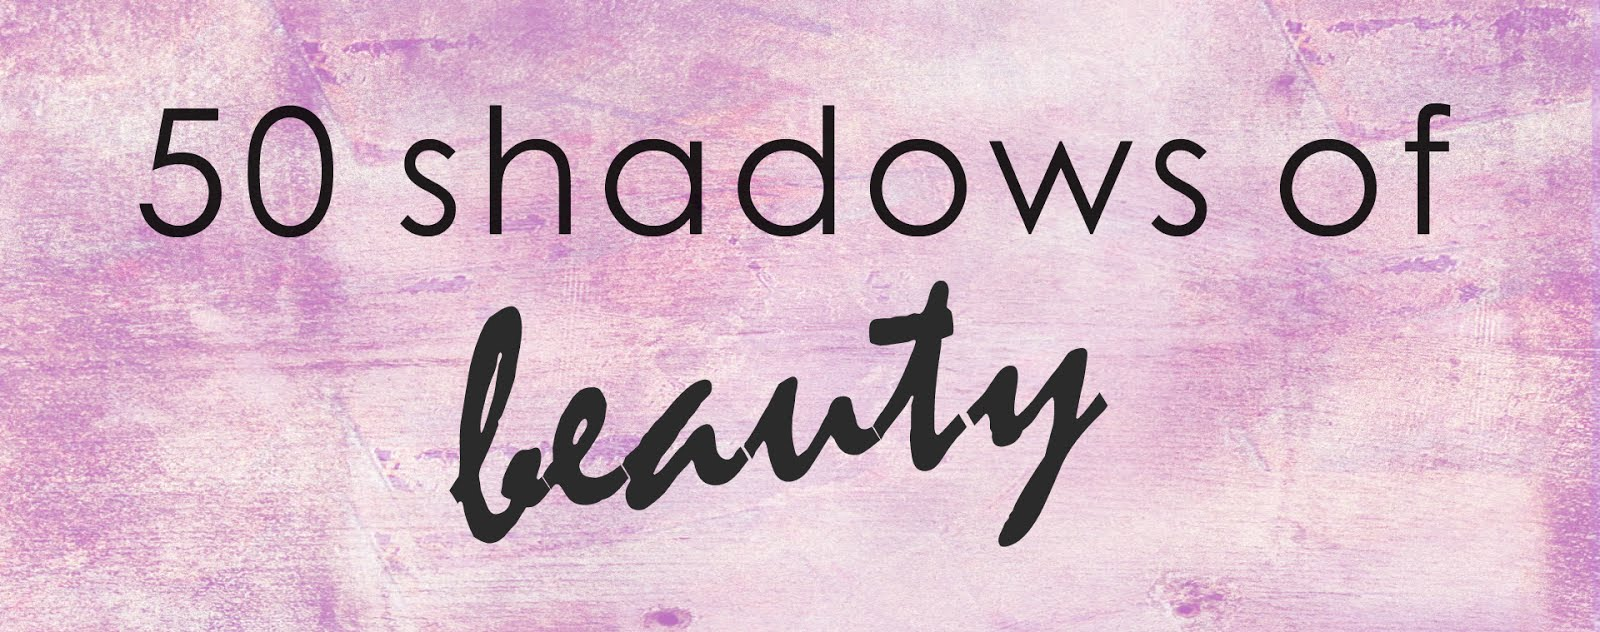 50 shadows of BEAUTY